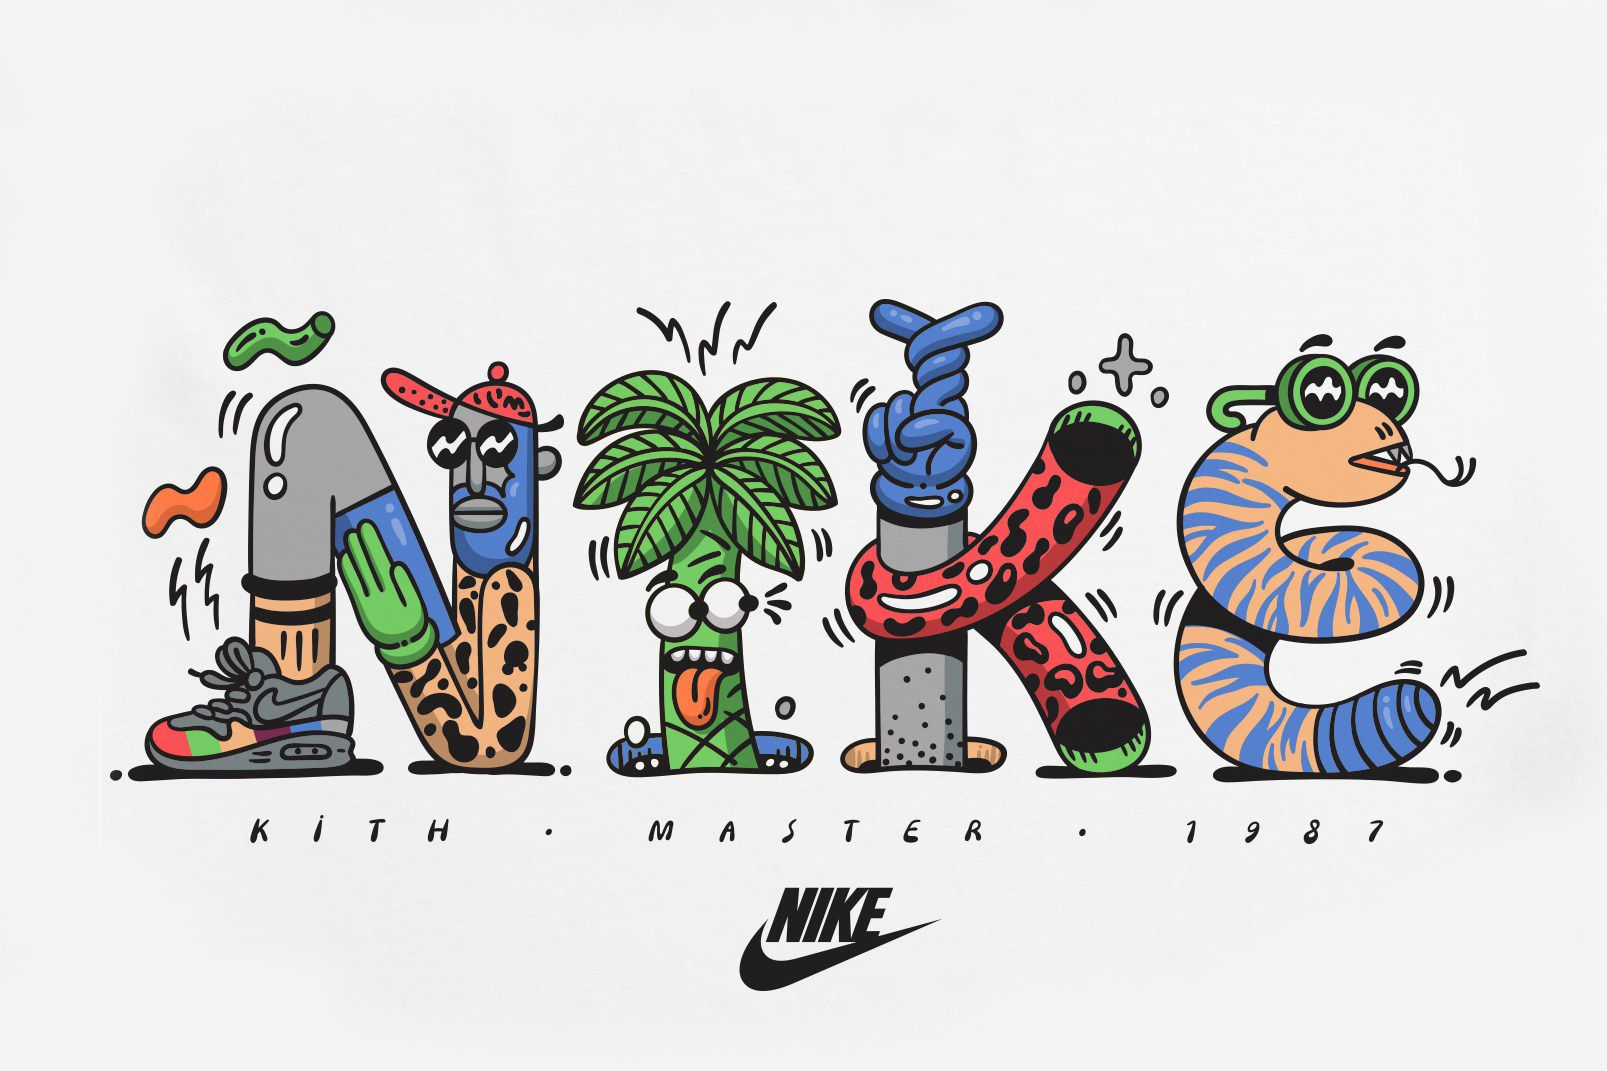 6ae1dba3b8 A Closer Look at the KITH x Steven Harrington x Nike Collaboration ...